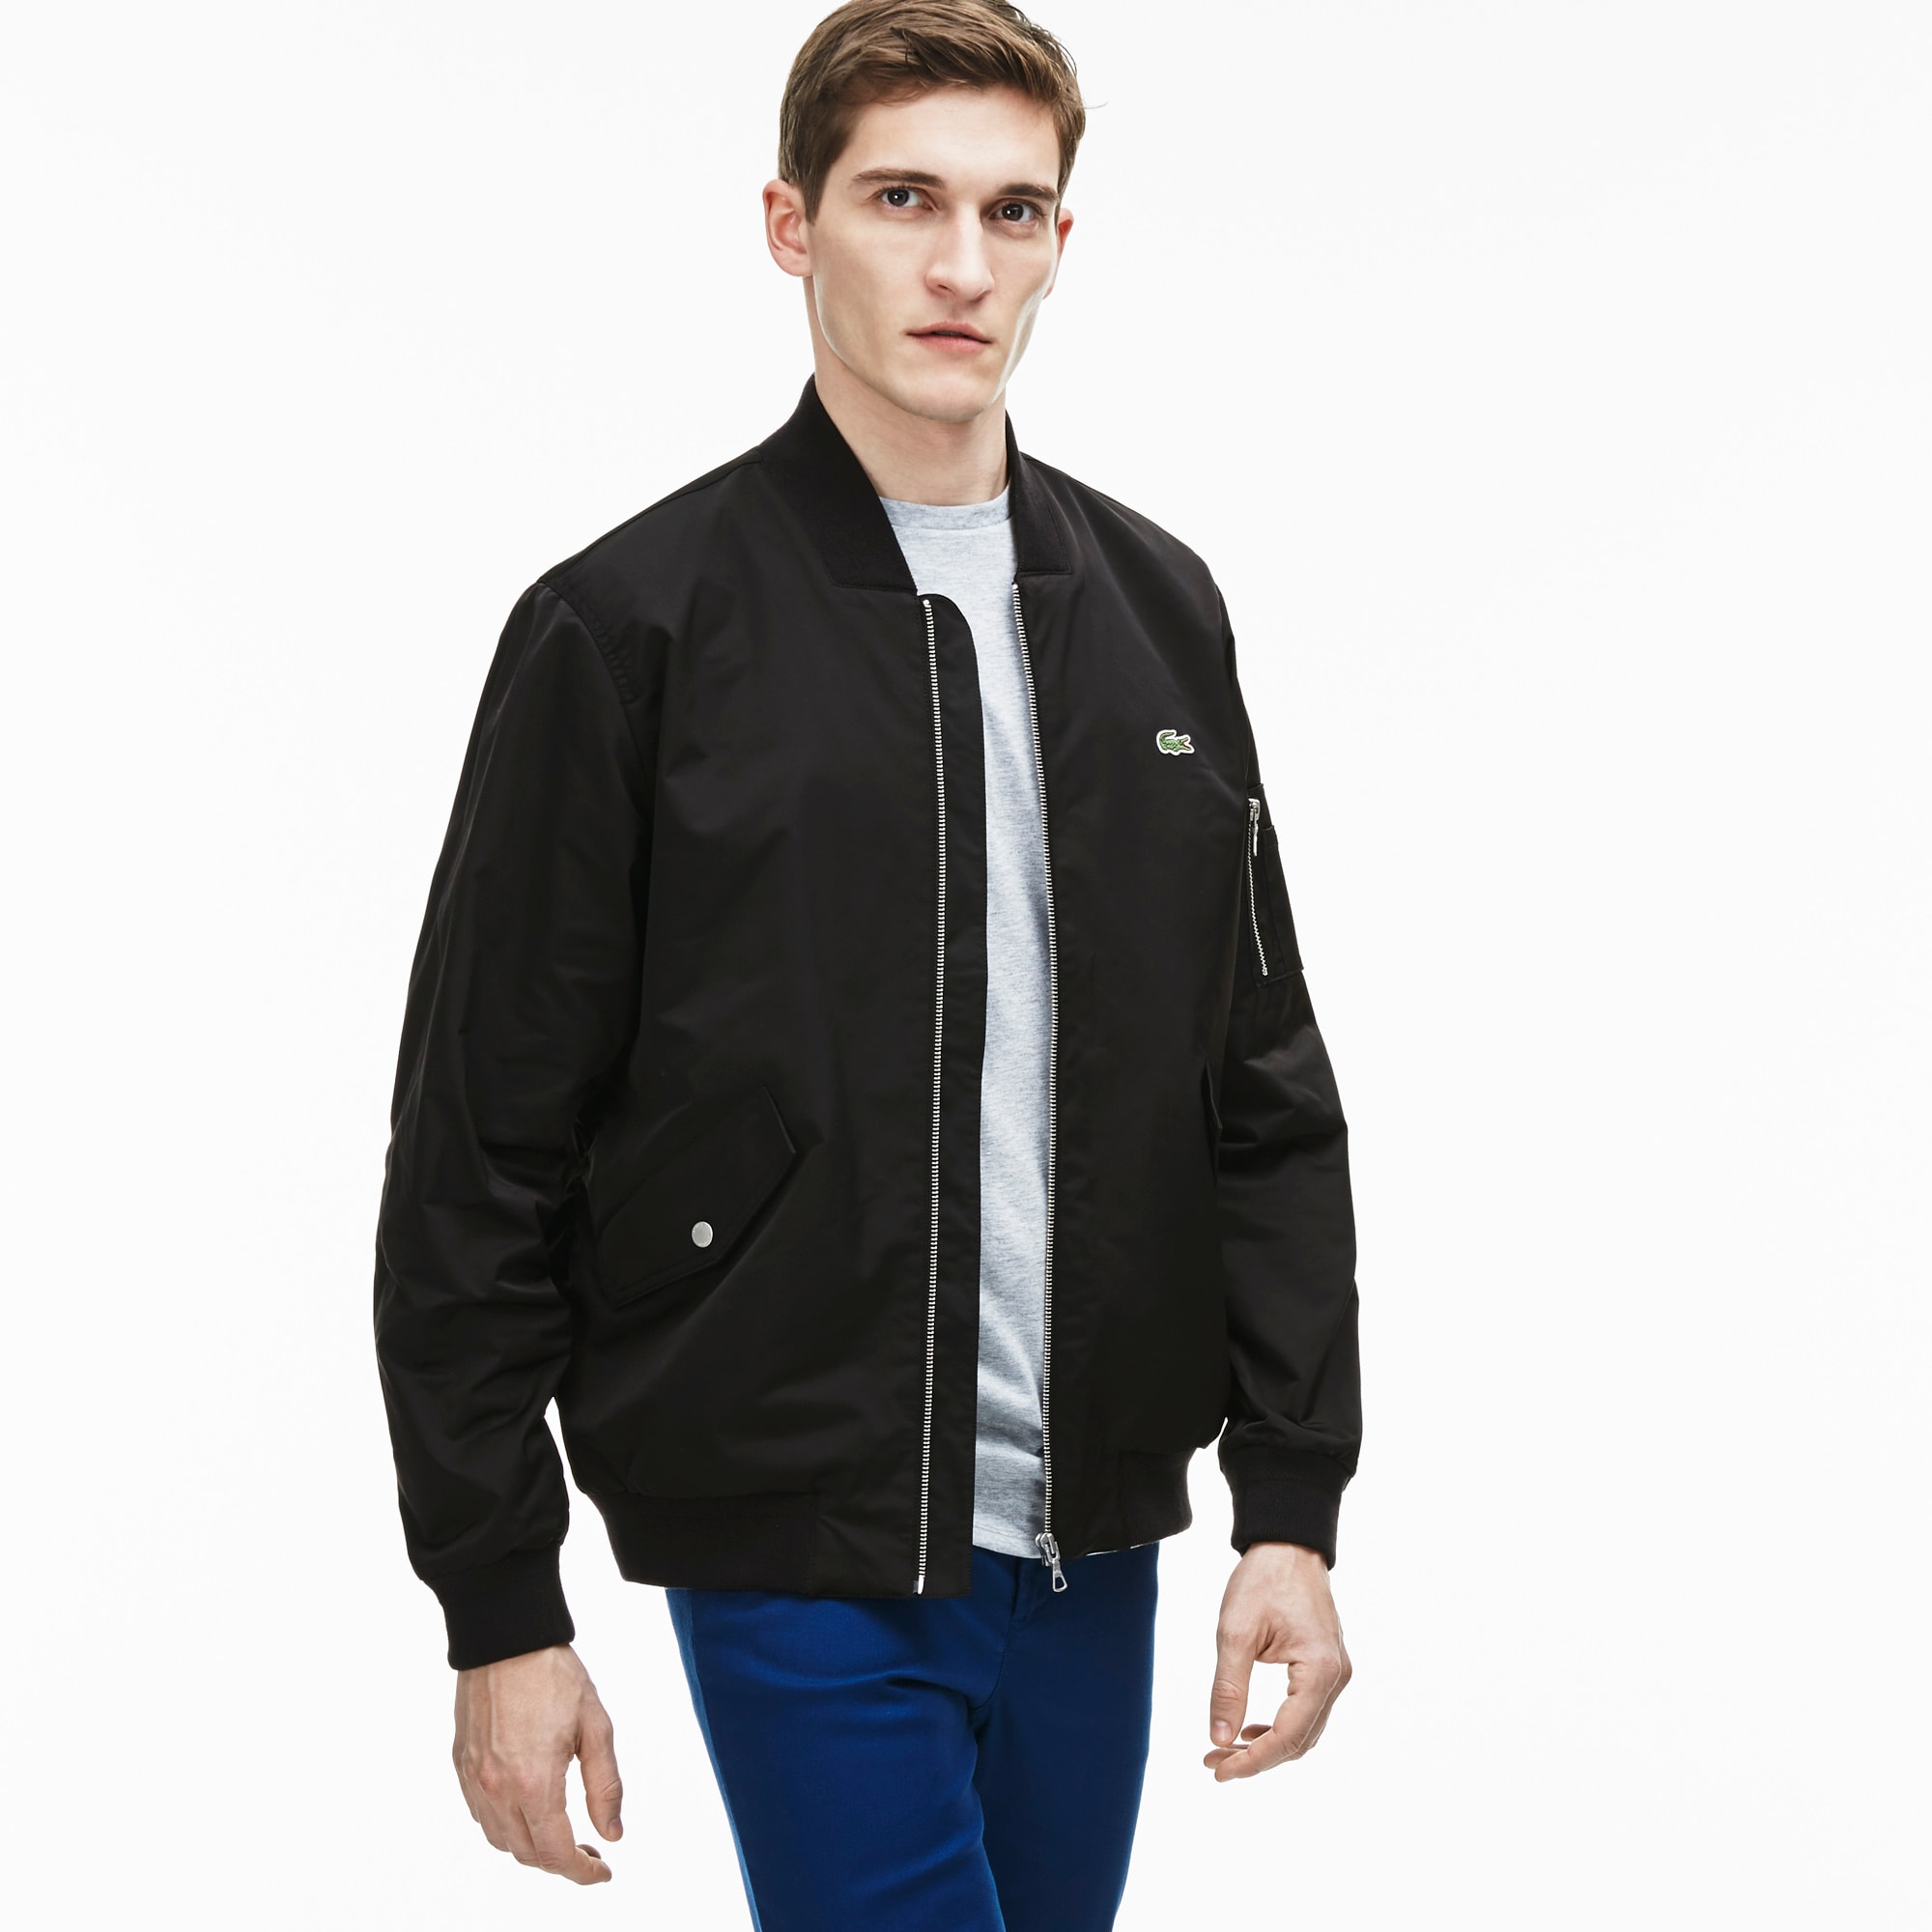 Men's Textured Nylon Bomber Jacket | LACOSTE